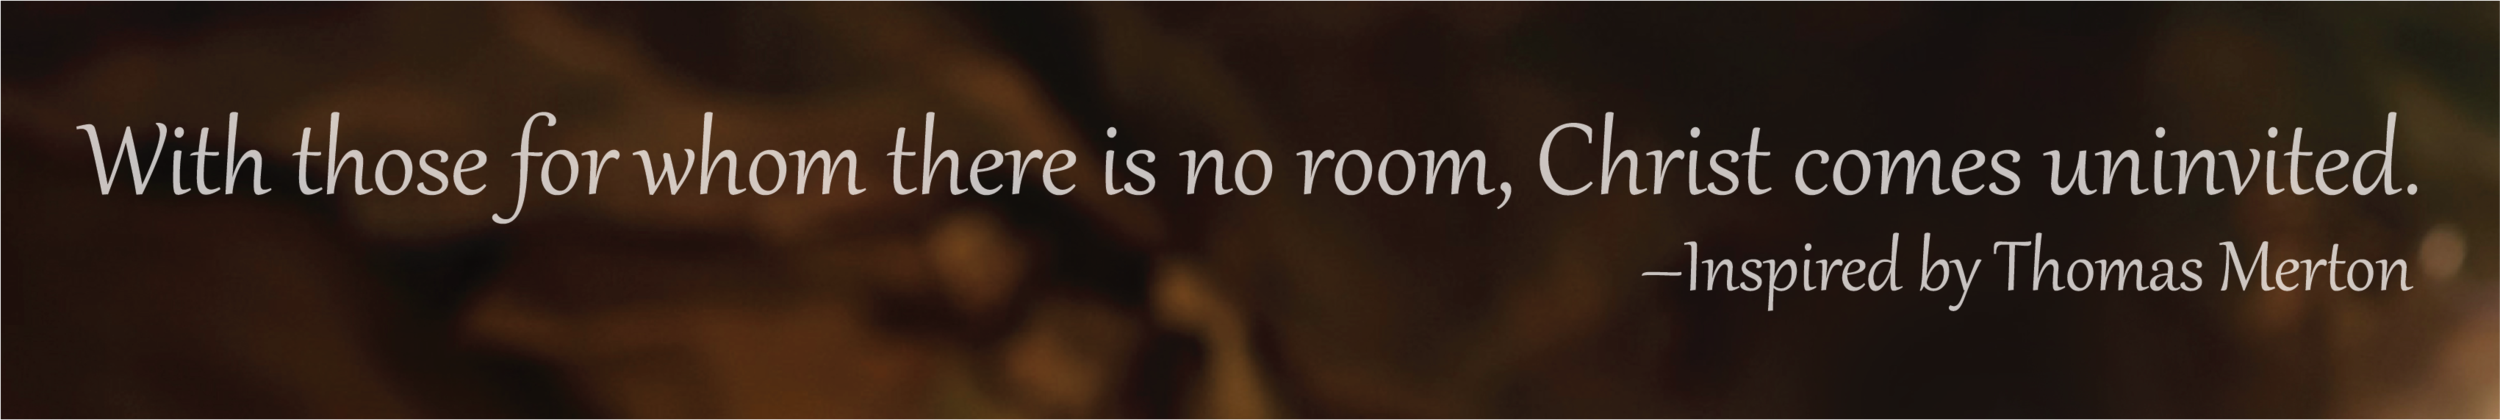 Thomas Merton Quote_UPDATED.png